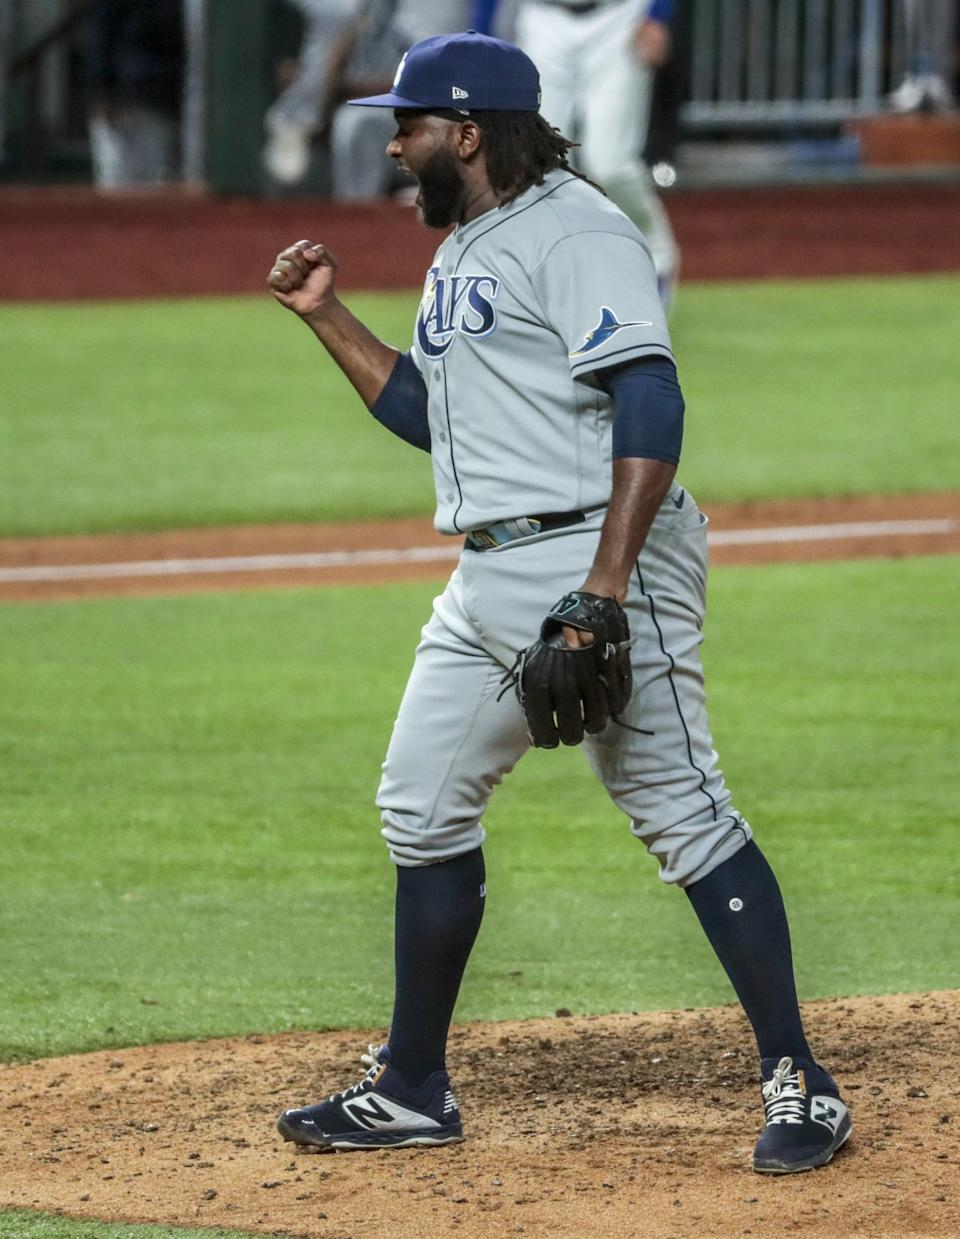 Tampa Bay Rays relief pitcher Diego Castillo celebrates after closing out a 6-4 win in Game 2 of the World Series.